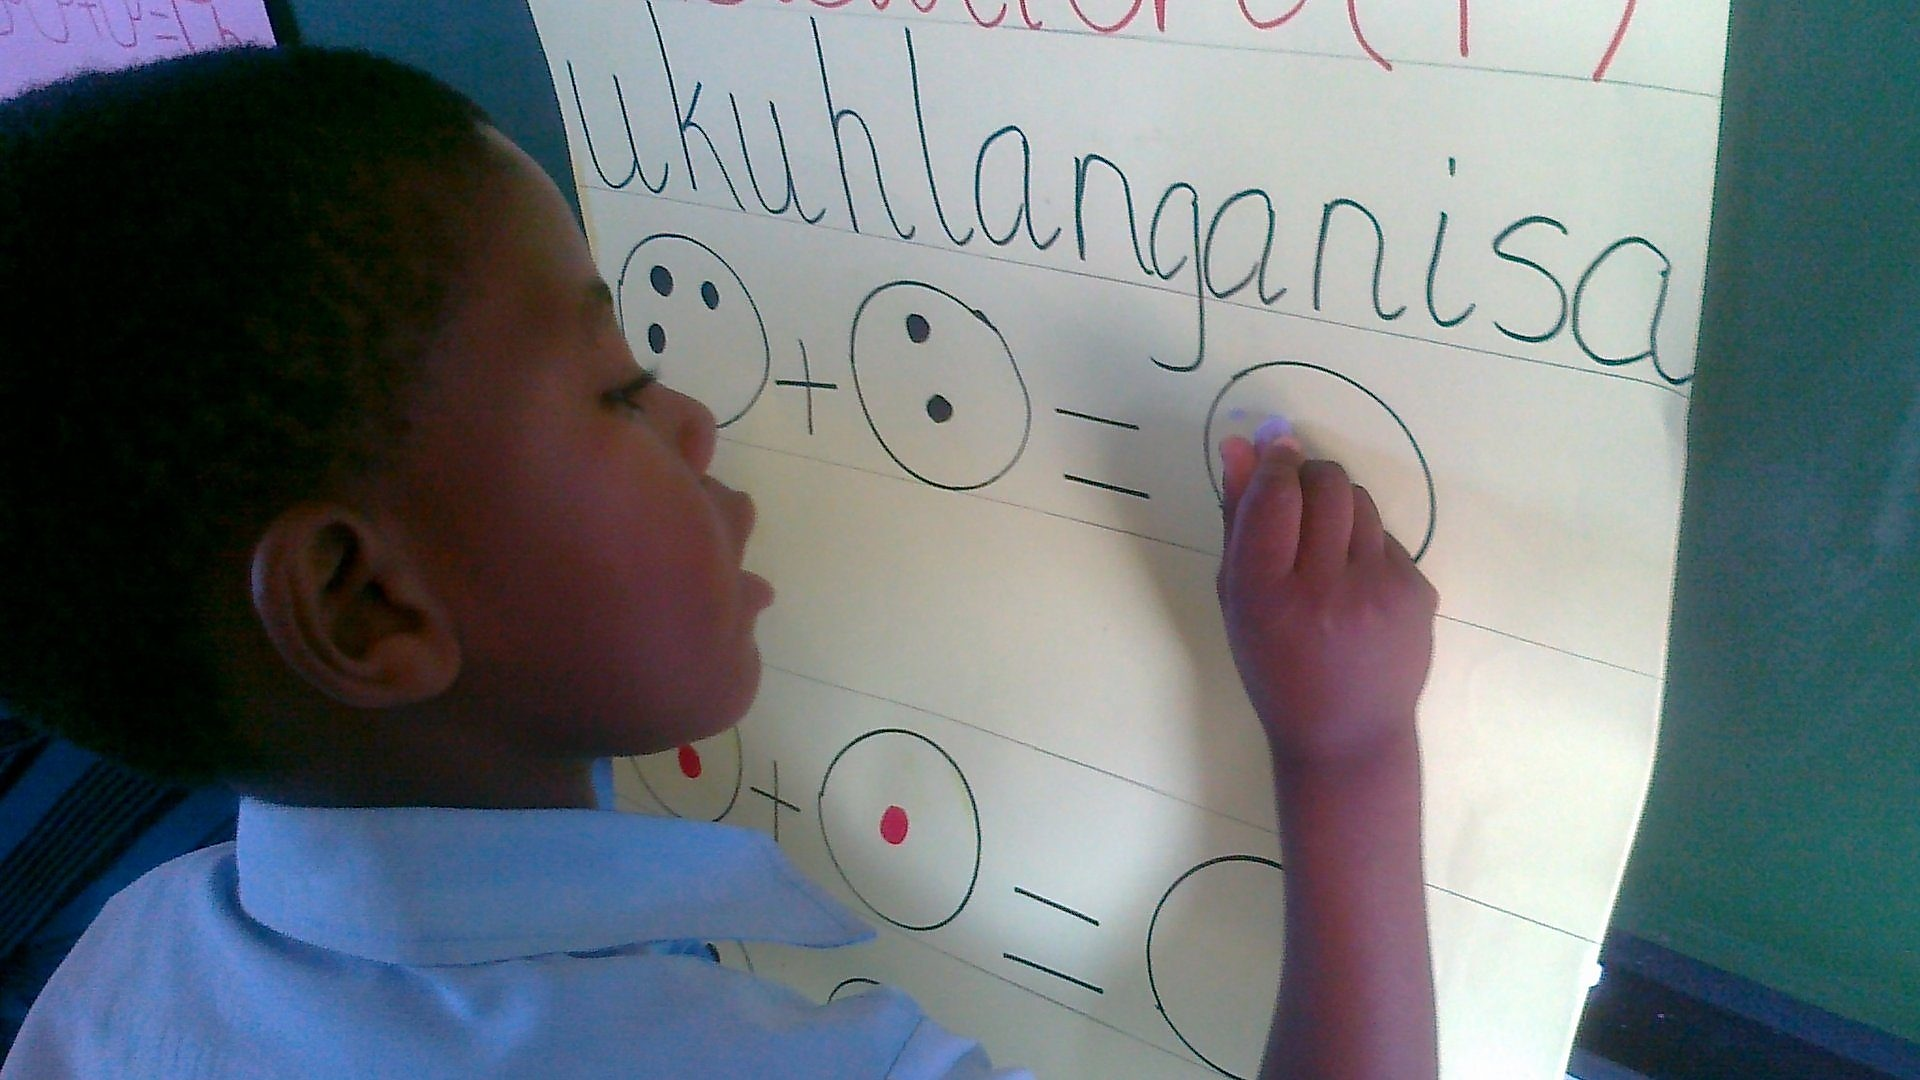 Child solving problem at flip chart